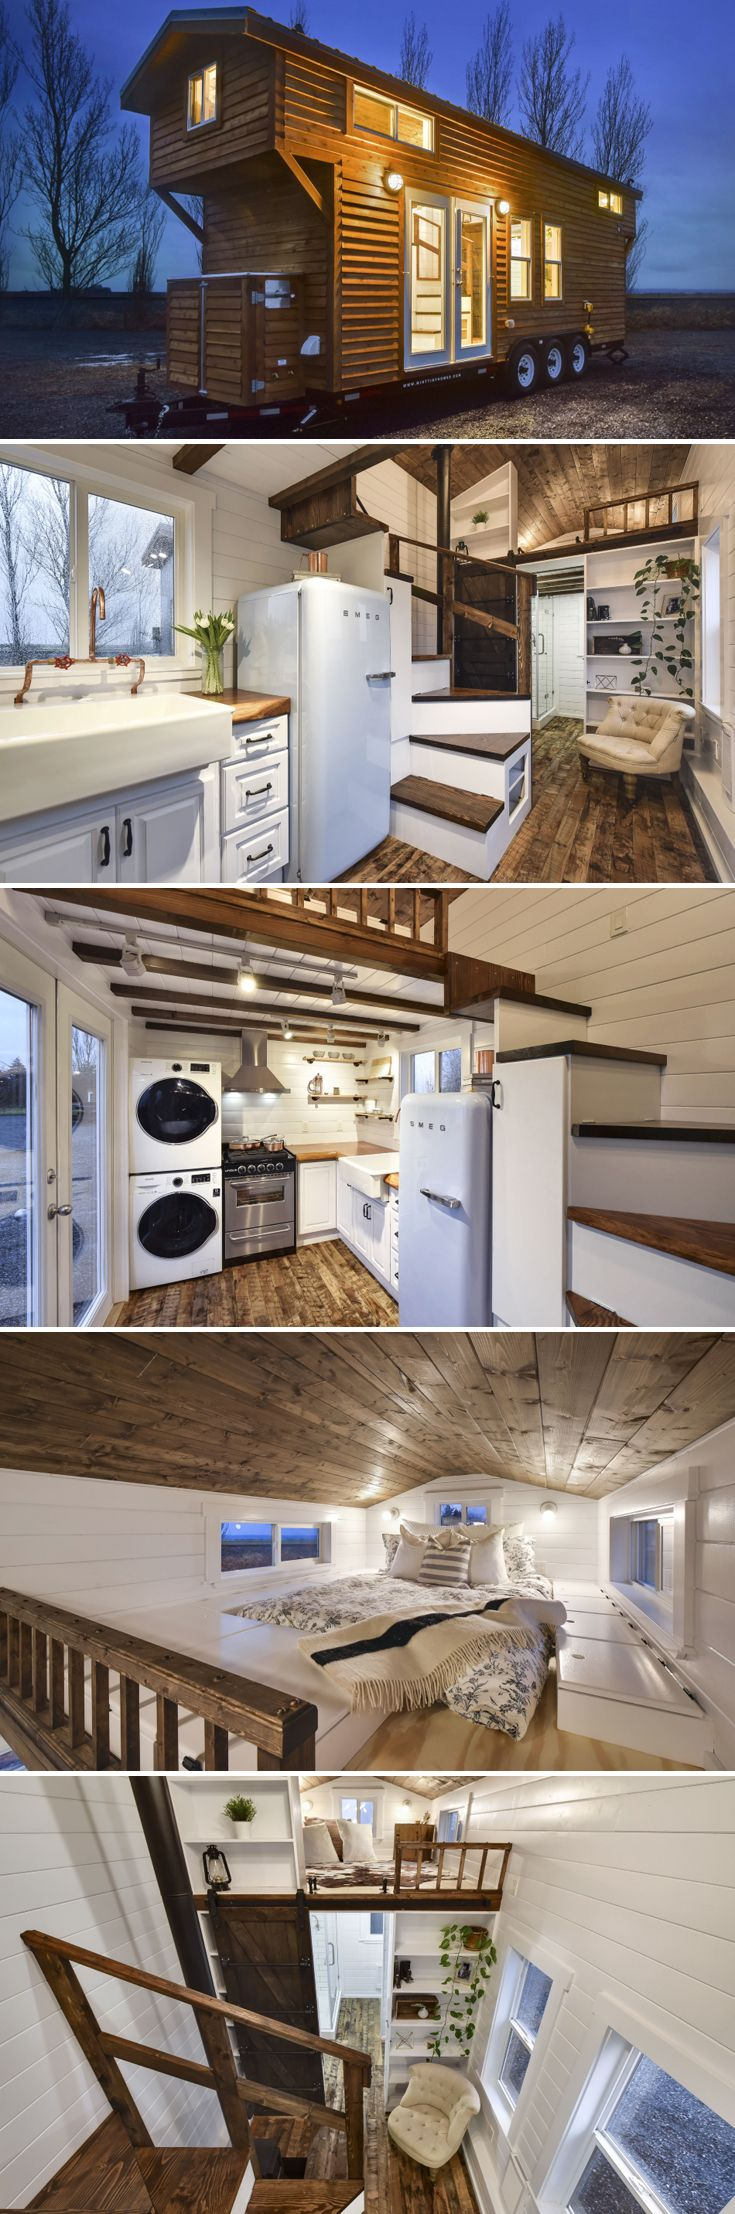 Best Tiny House Trailer Ideas On Pinterest Tiny Love Mobile